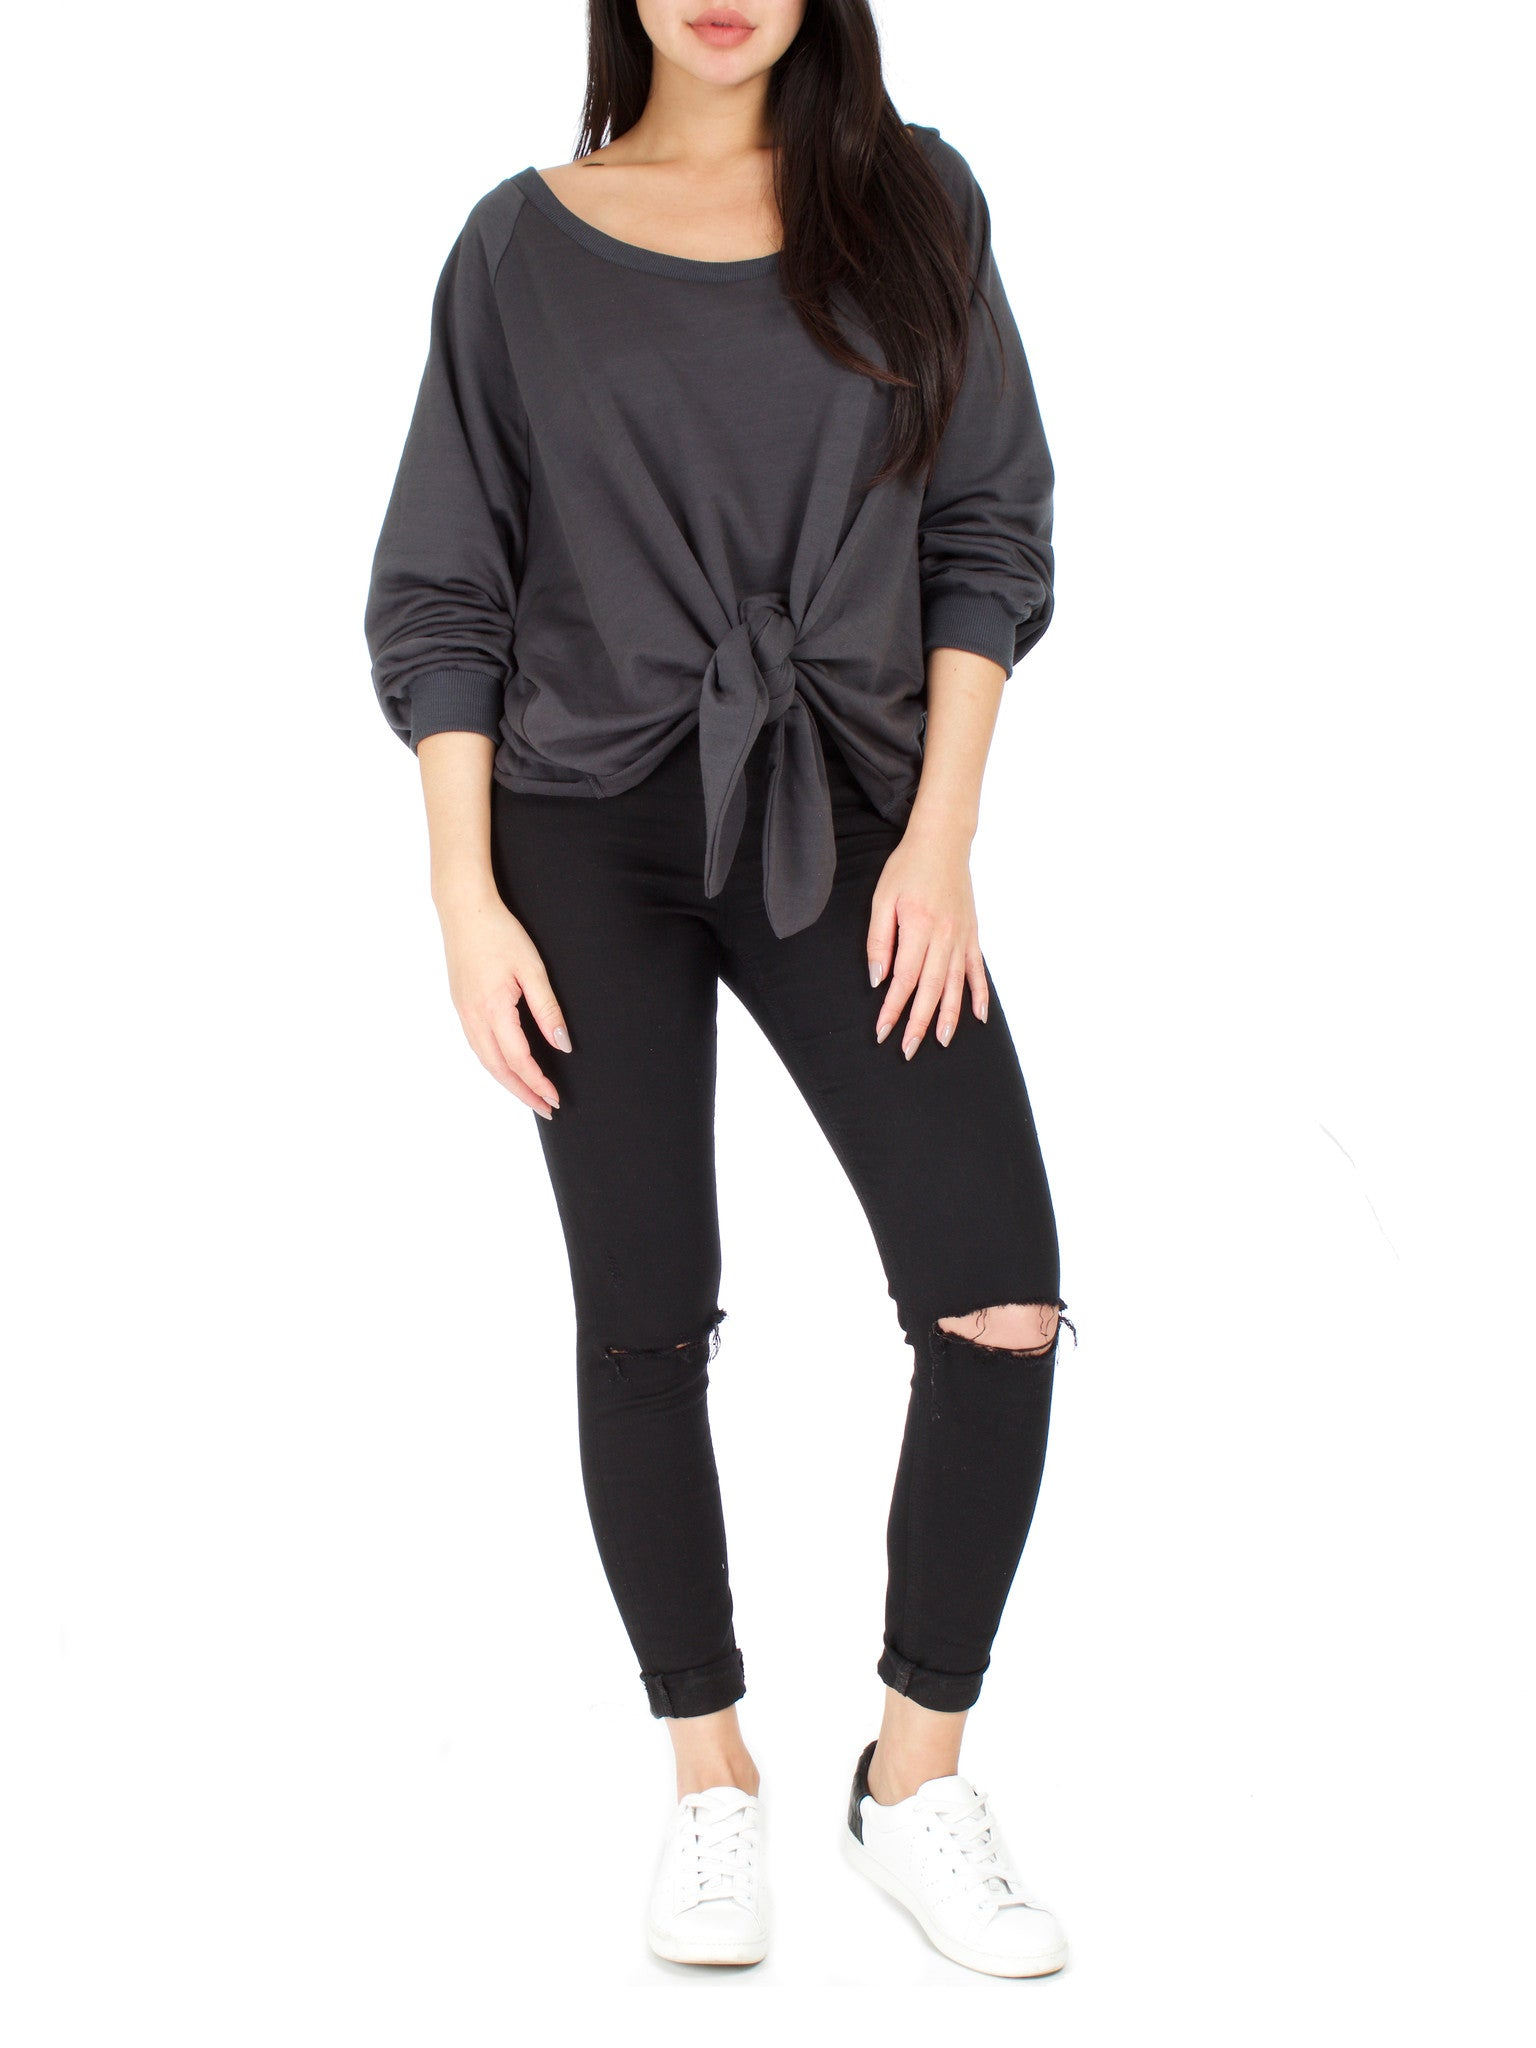 Oversized Front Tie Sweater - PRADEGAL